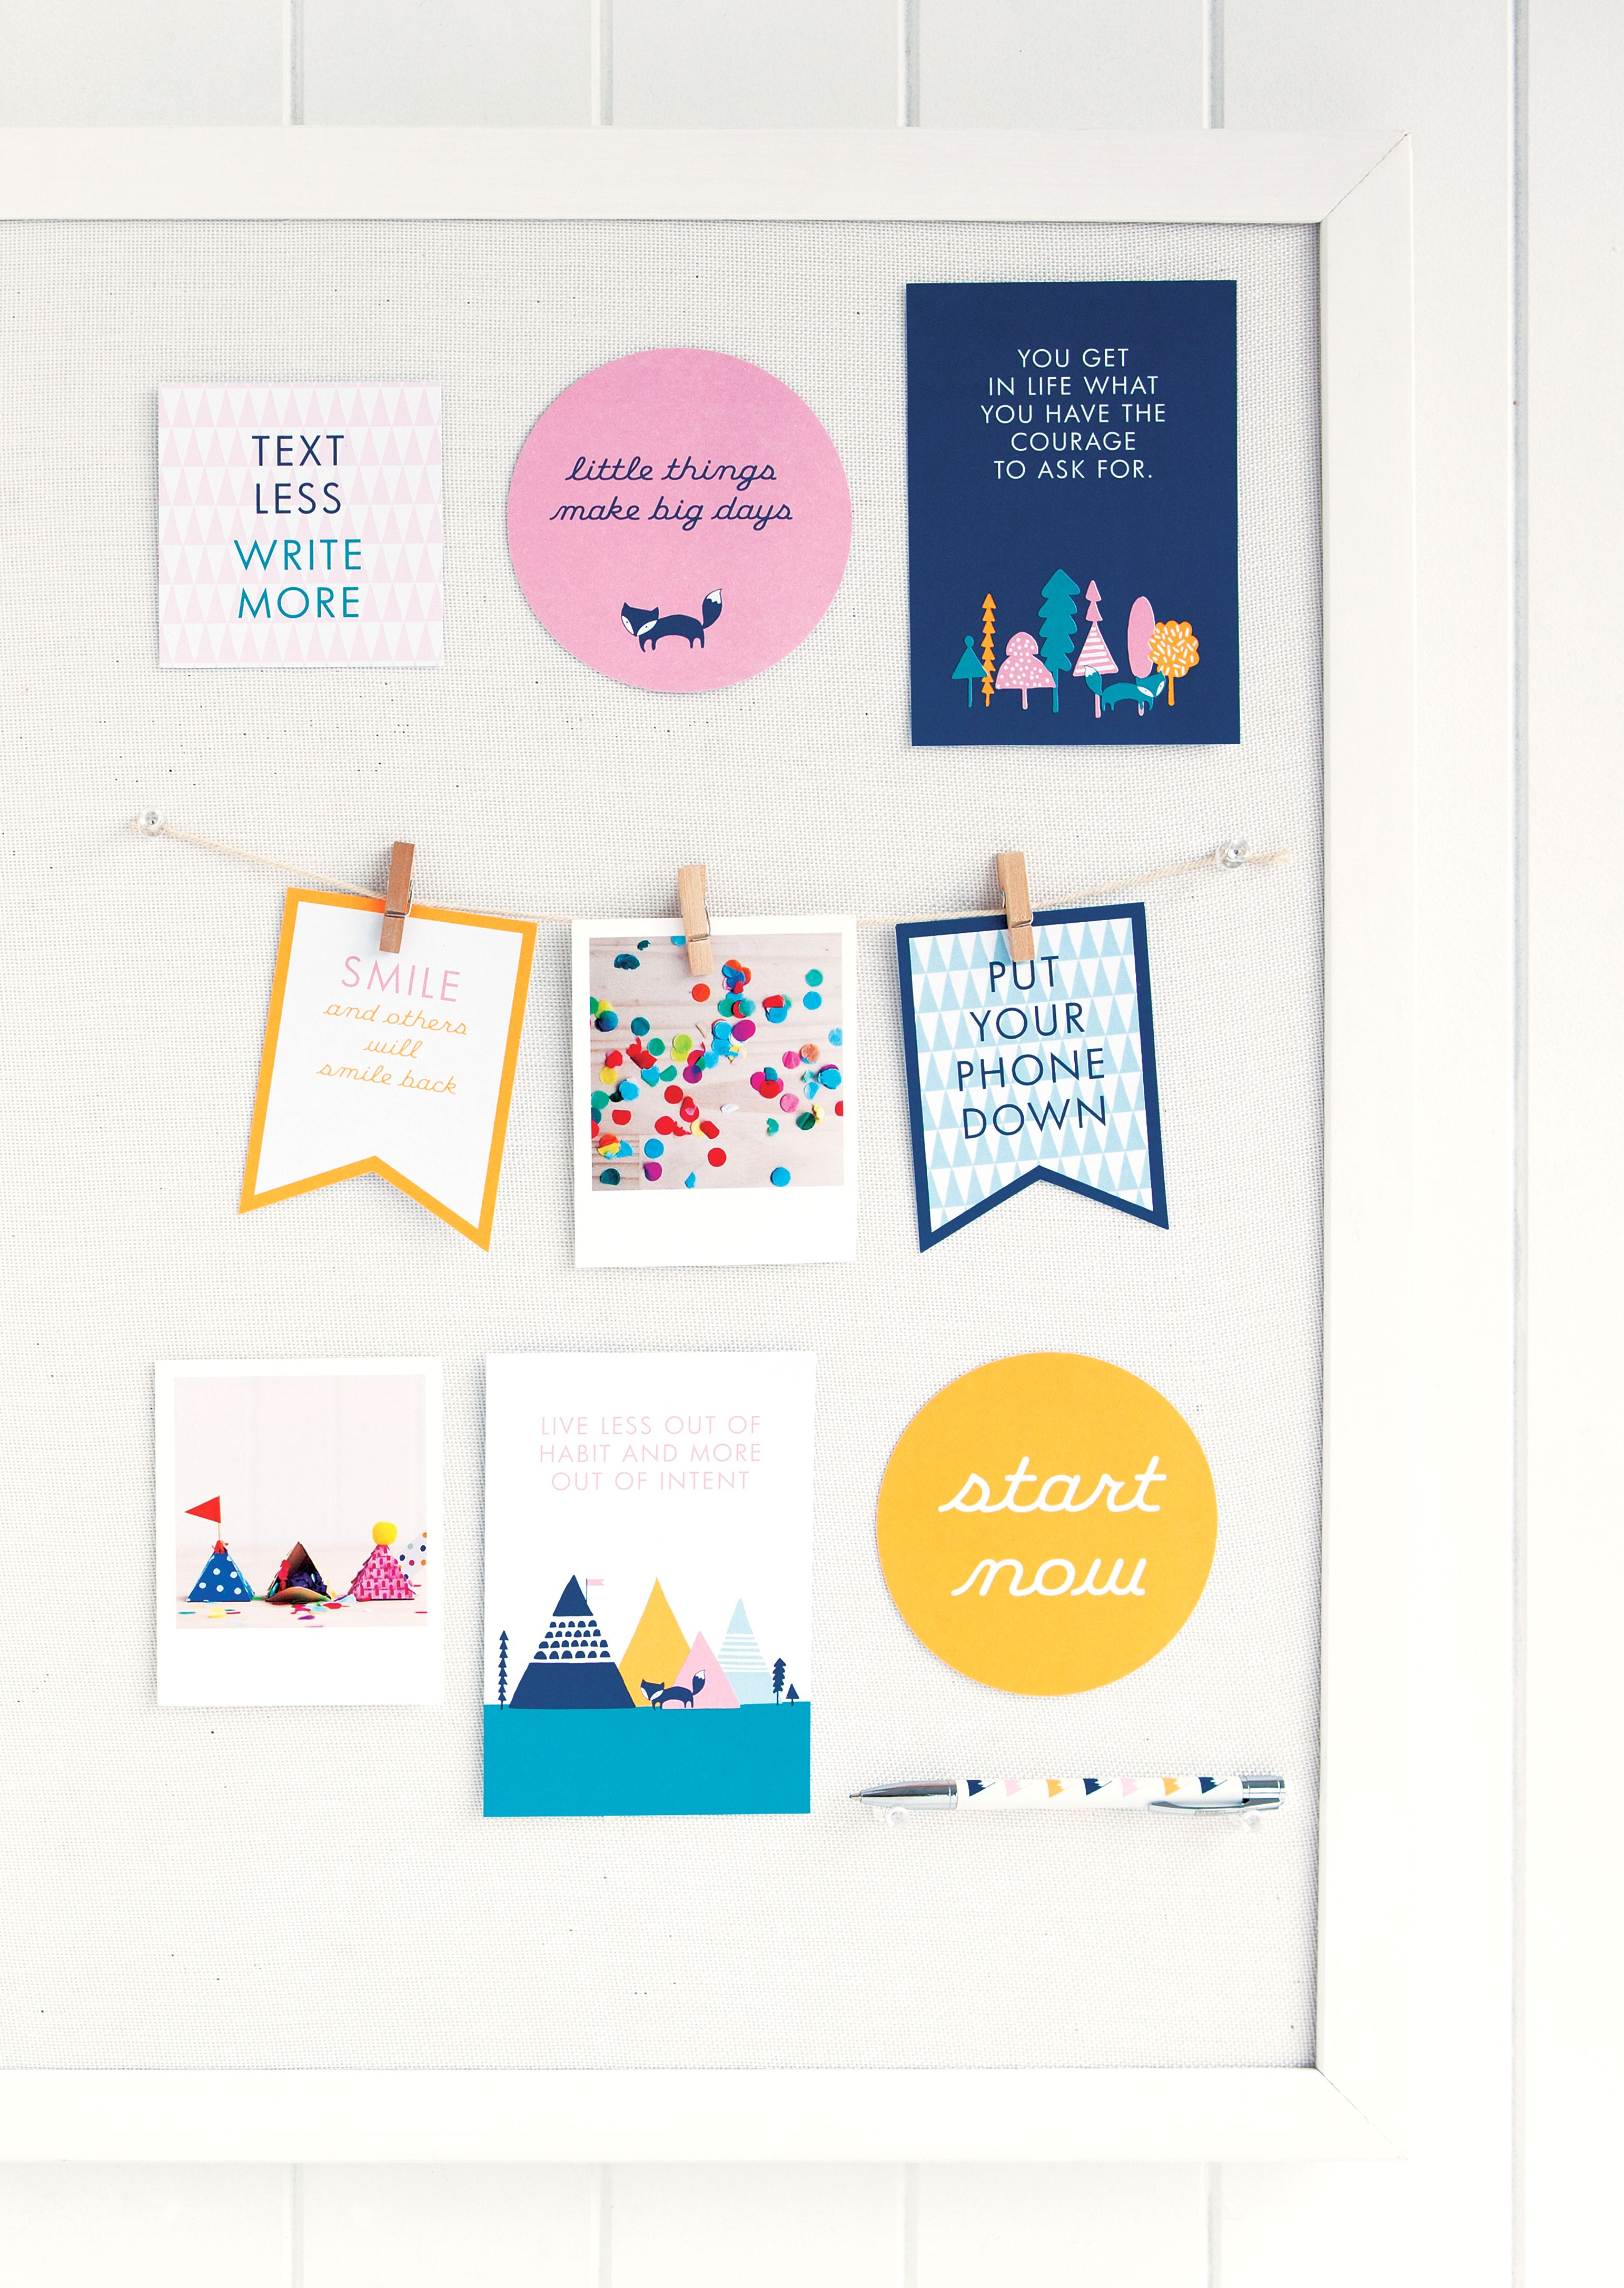 discover how to create an inspiring and motivational vision board for your desk or work space